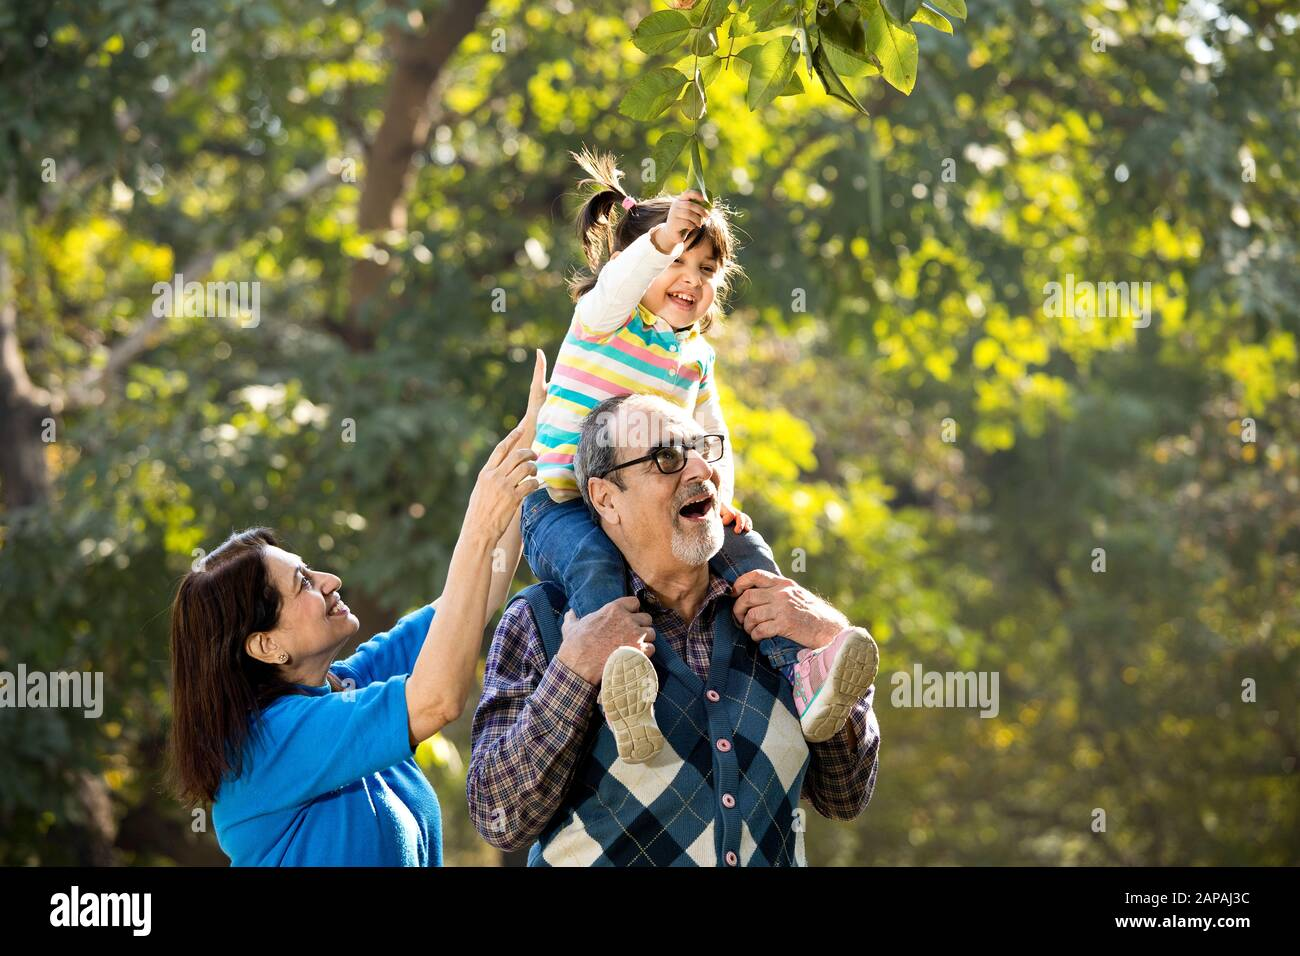 Grandmother with granddaughter sitting on grandfather's shoulder at park Stock Photo